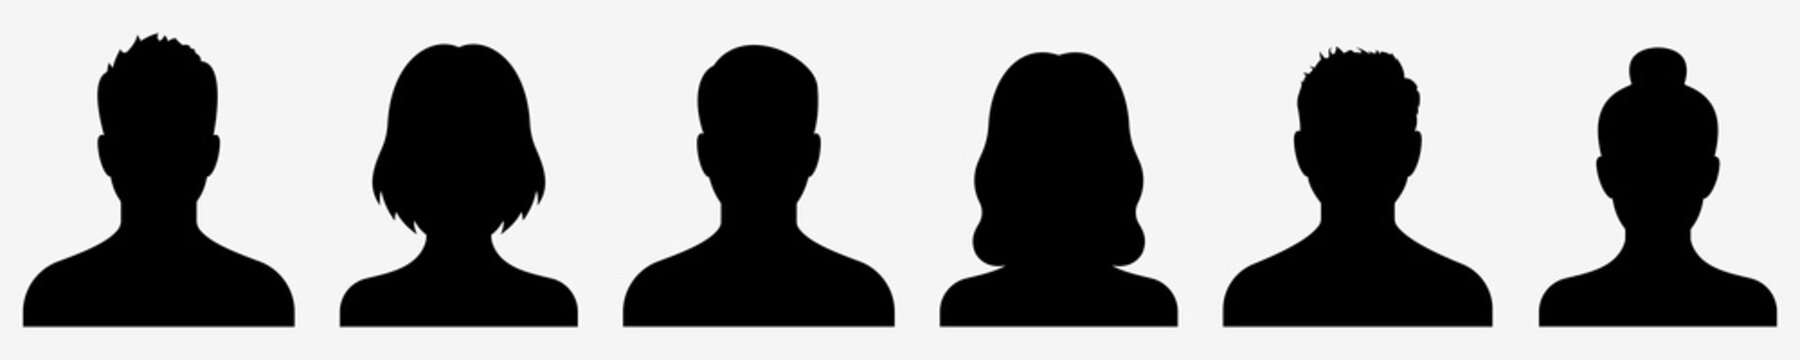 Avatar icon. Profile icons set. Male and female avatars. Vector illustration